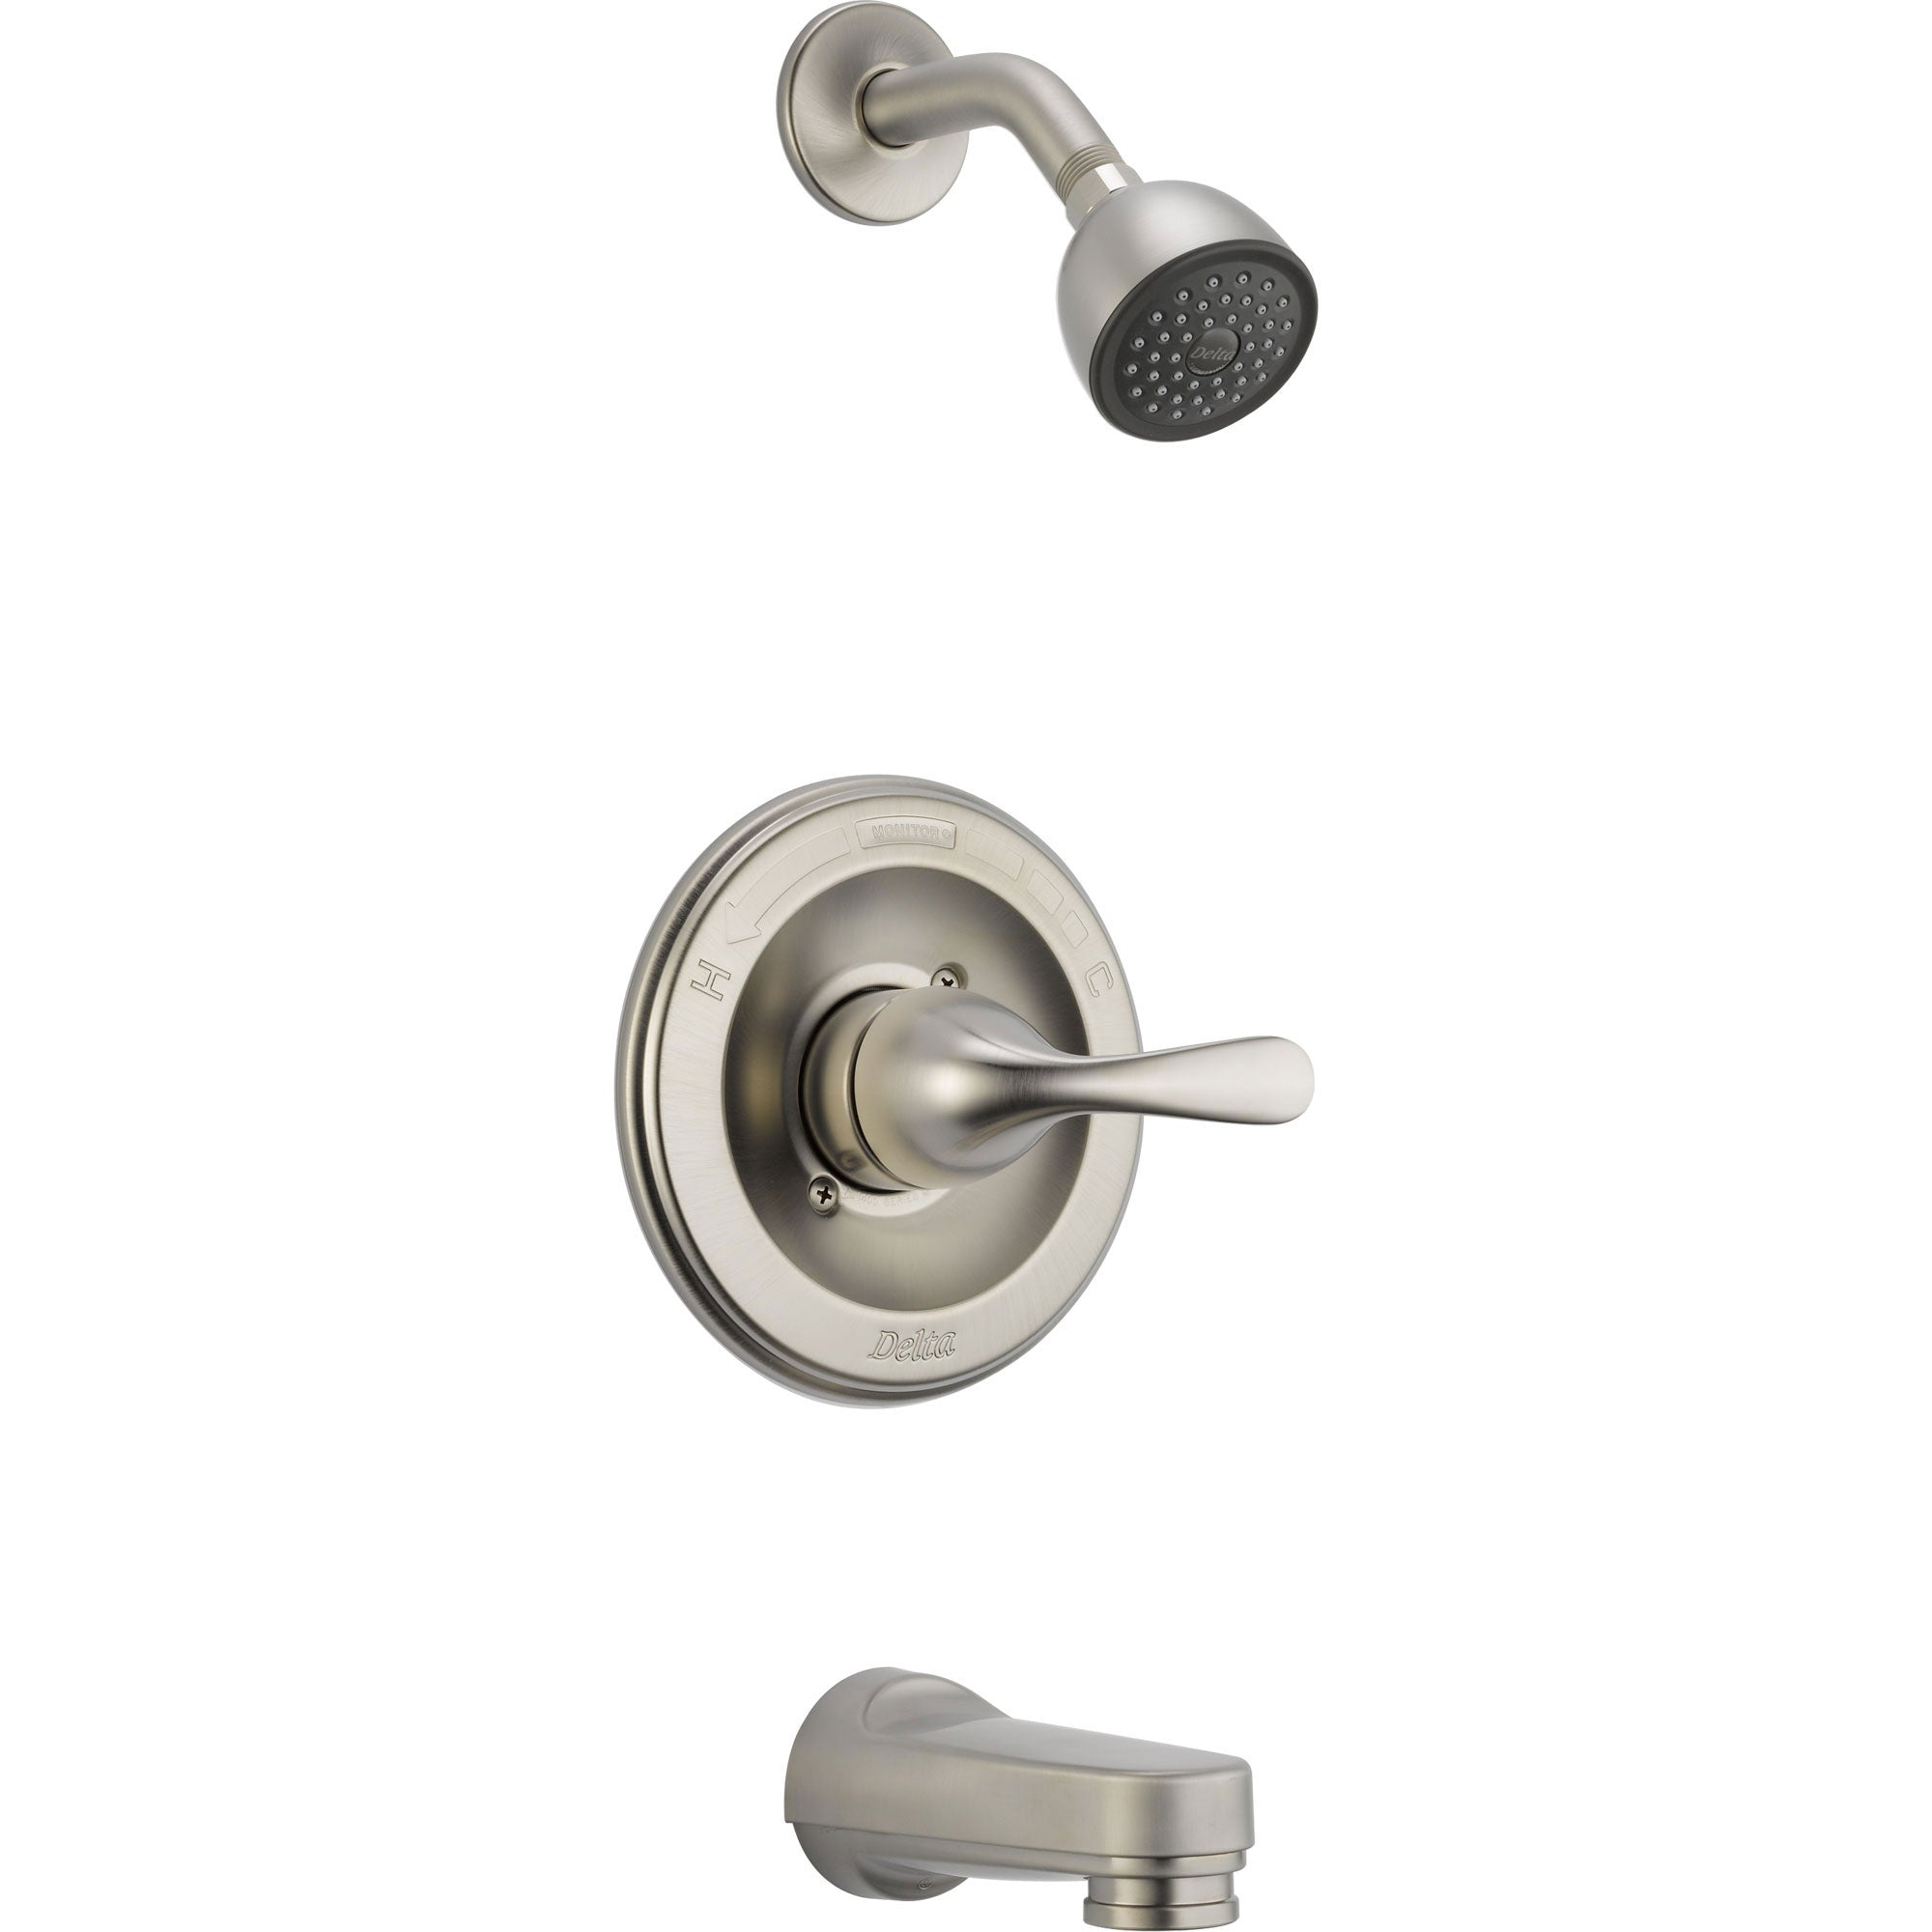 Delta Classic Stainless Steel Finish 1-Handle Tub and Shower Faucet Trim 586367